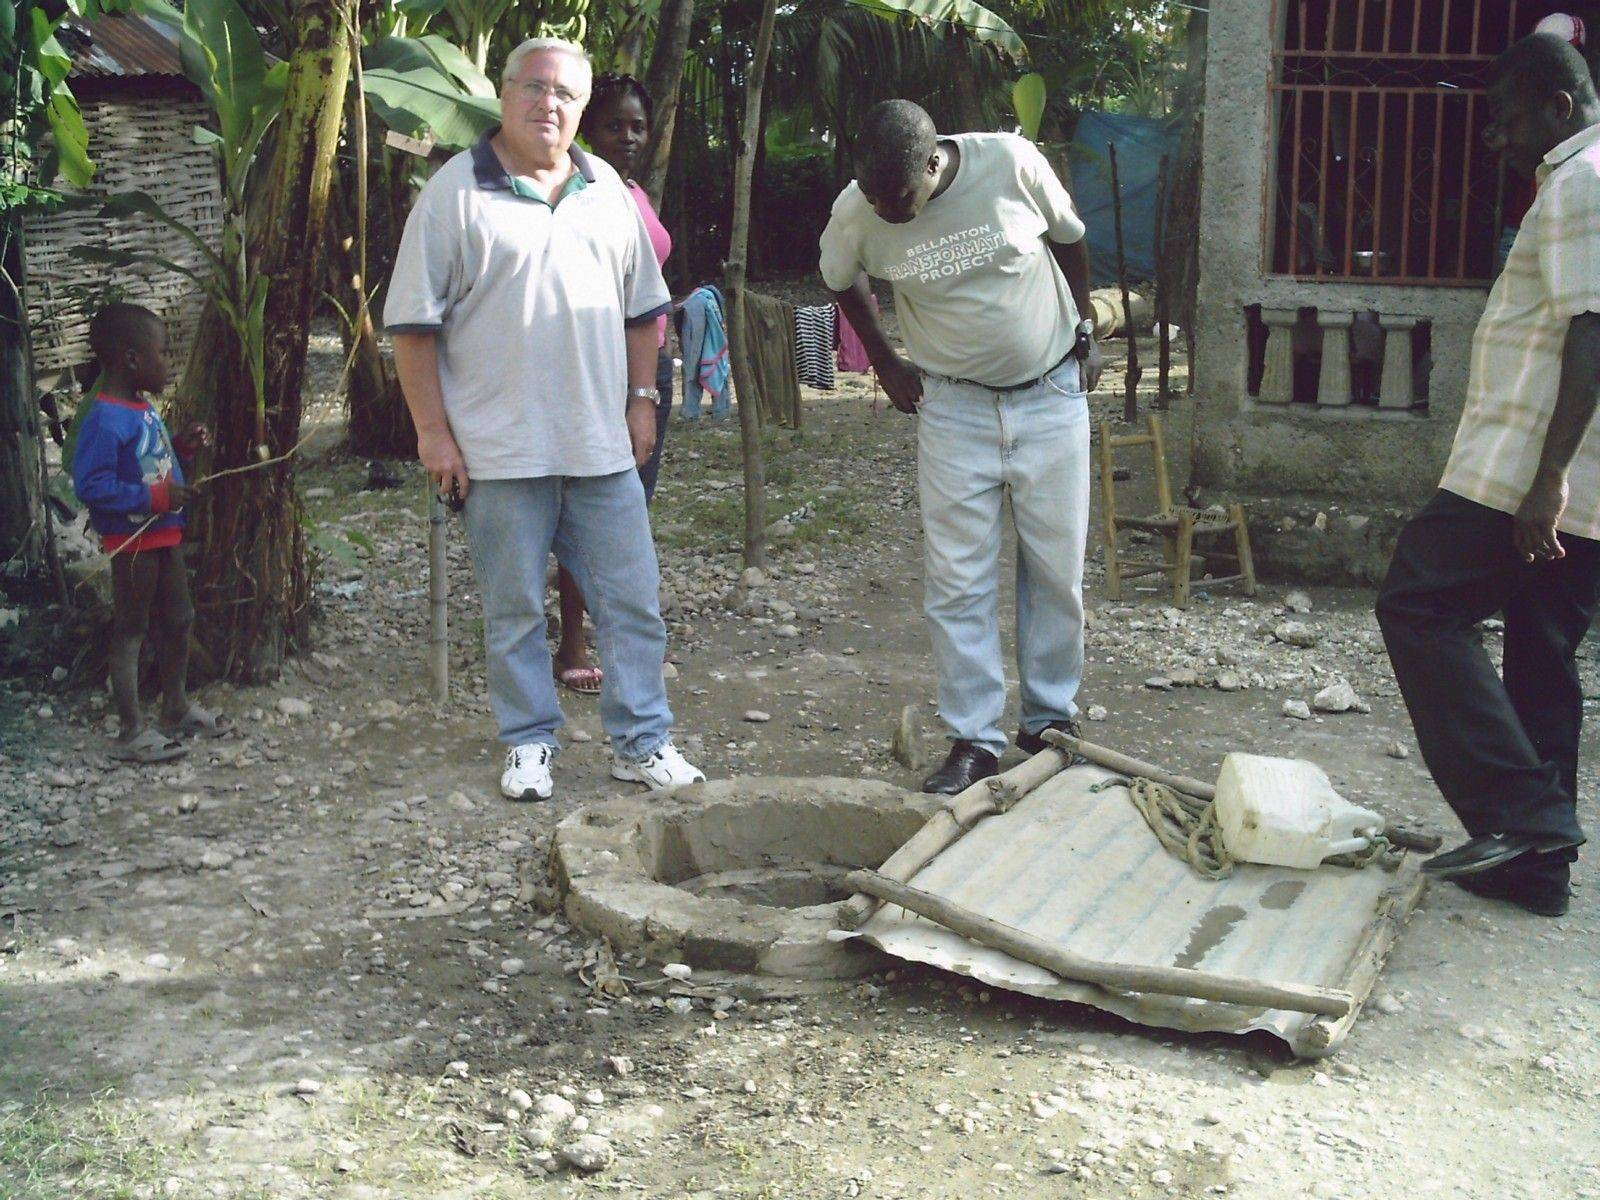 John Peterson, of Elburn, returned home Tuesday after a week in Haiti.